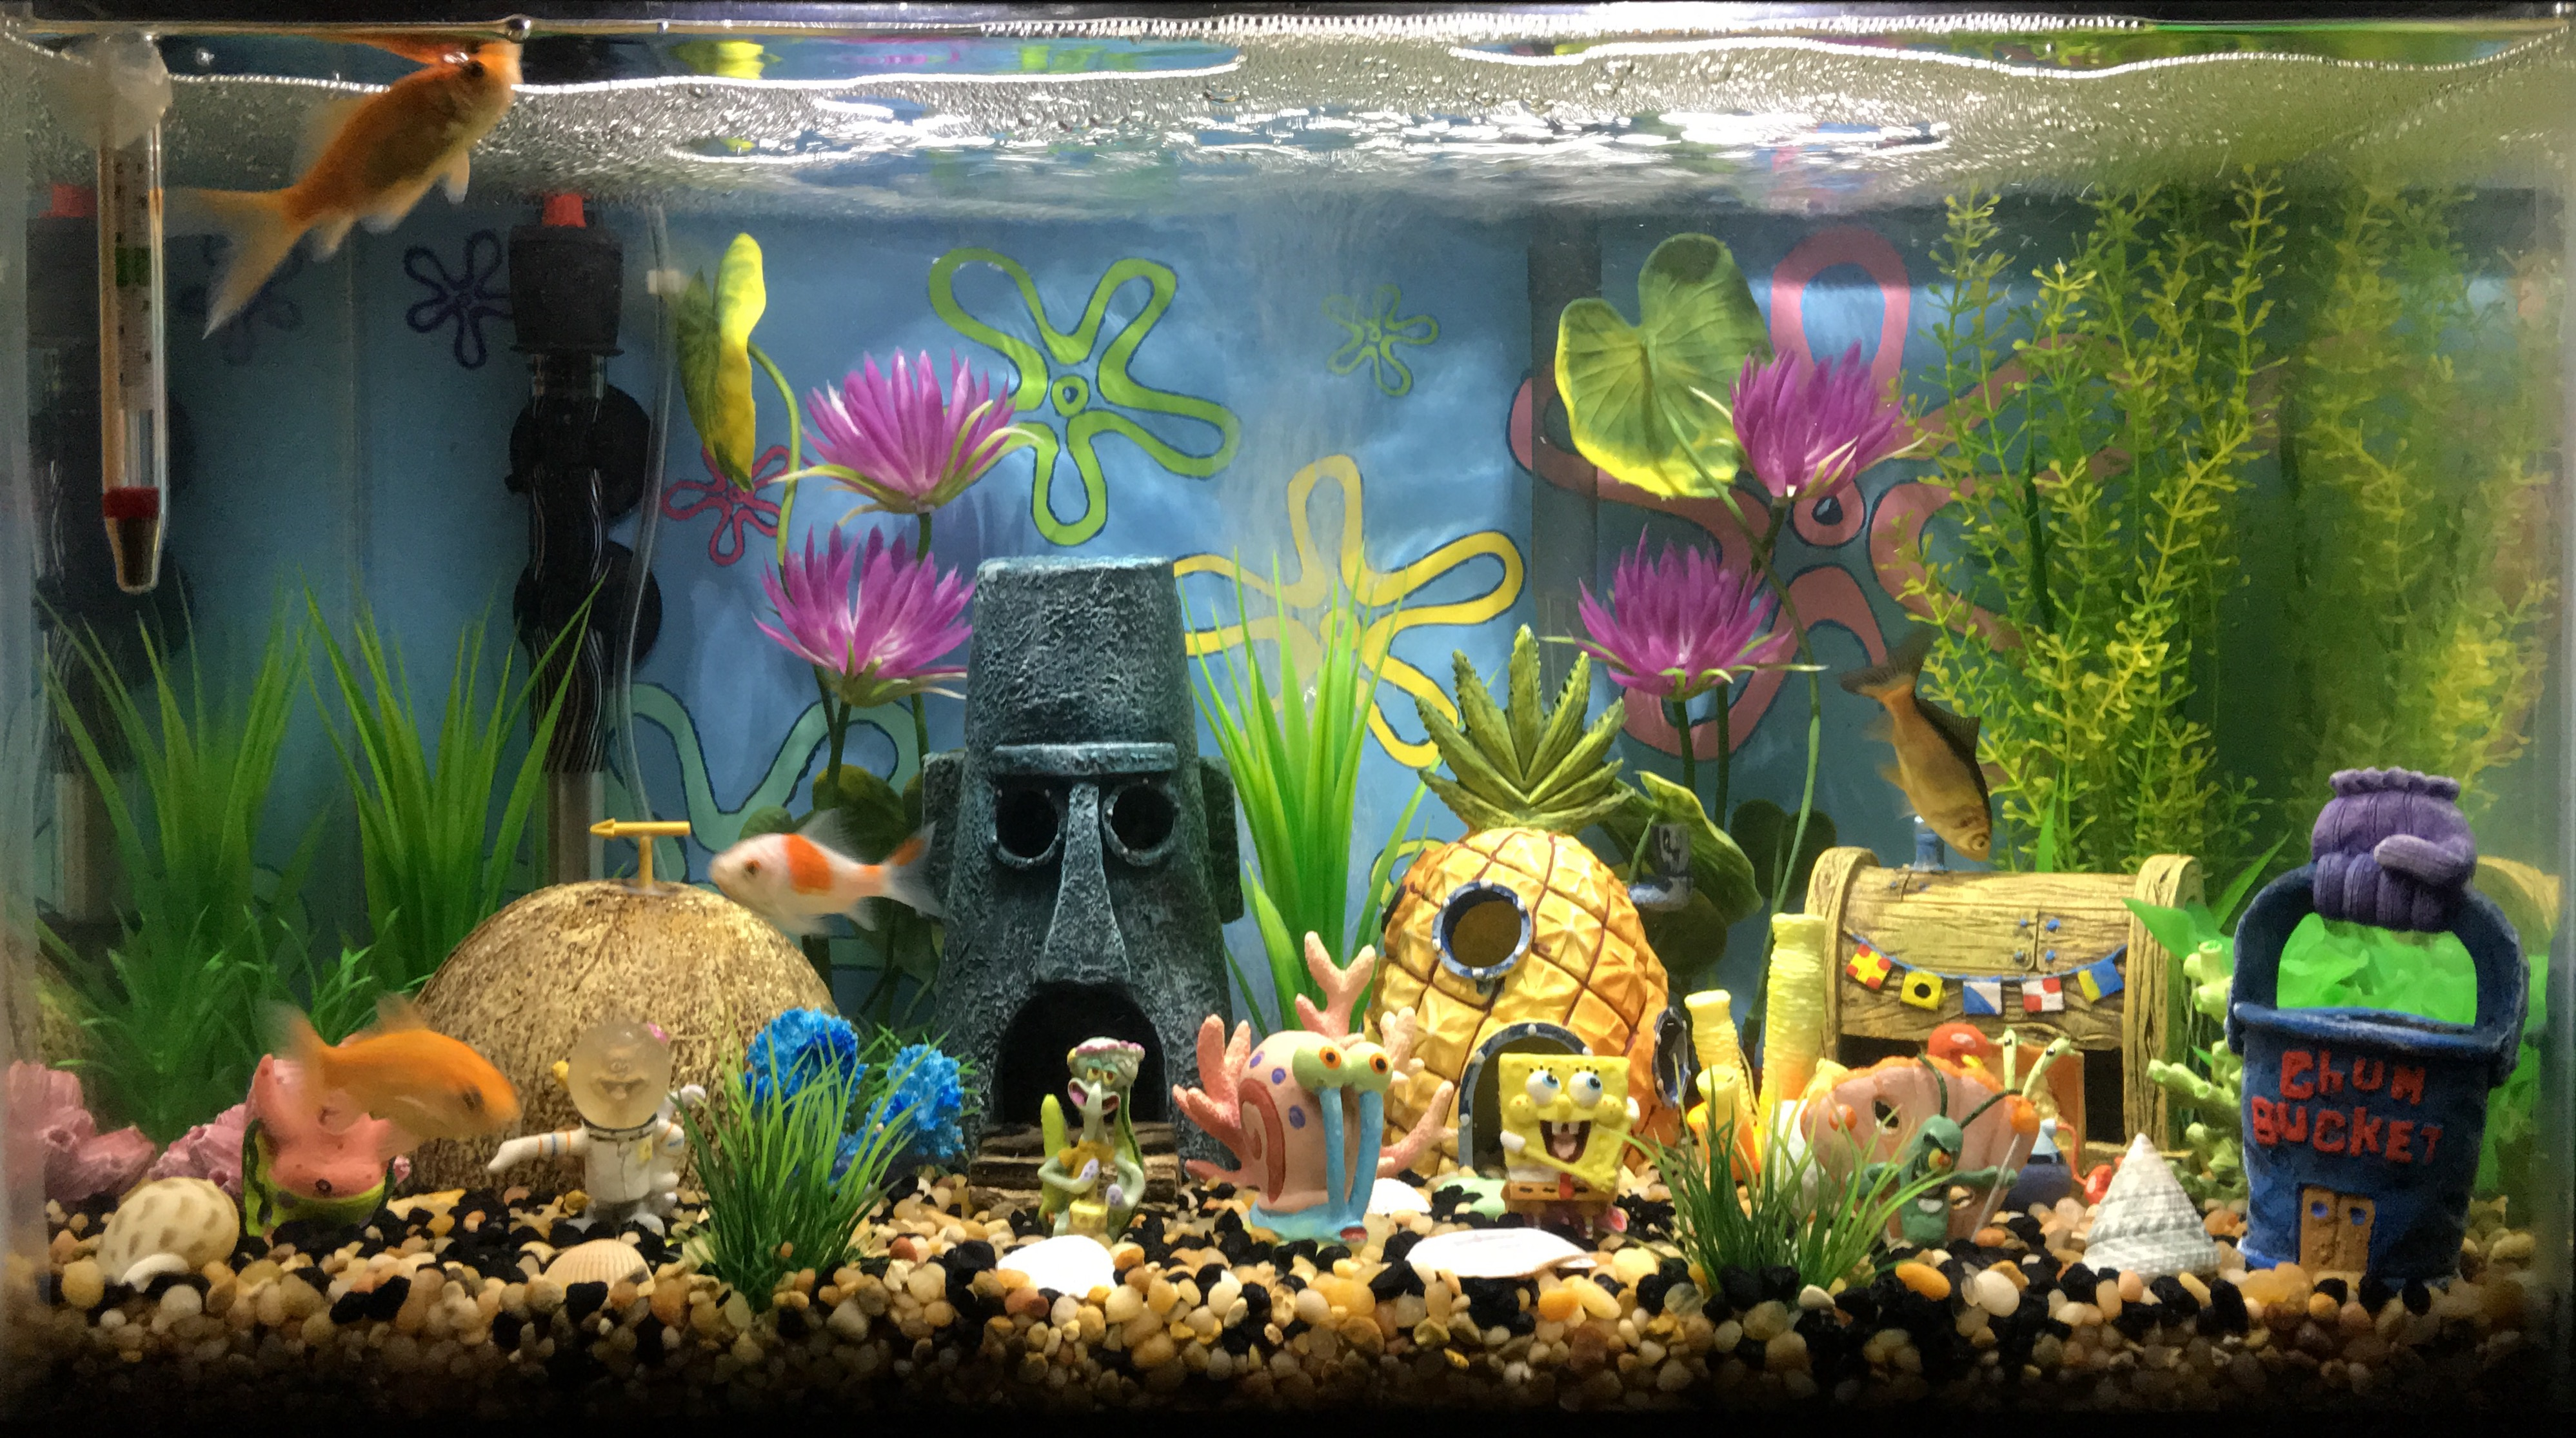 spongebob_fish_tank_decorations